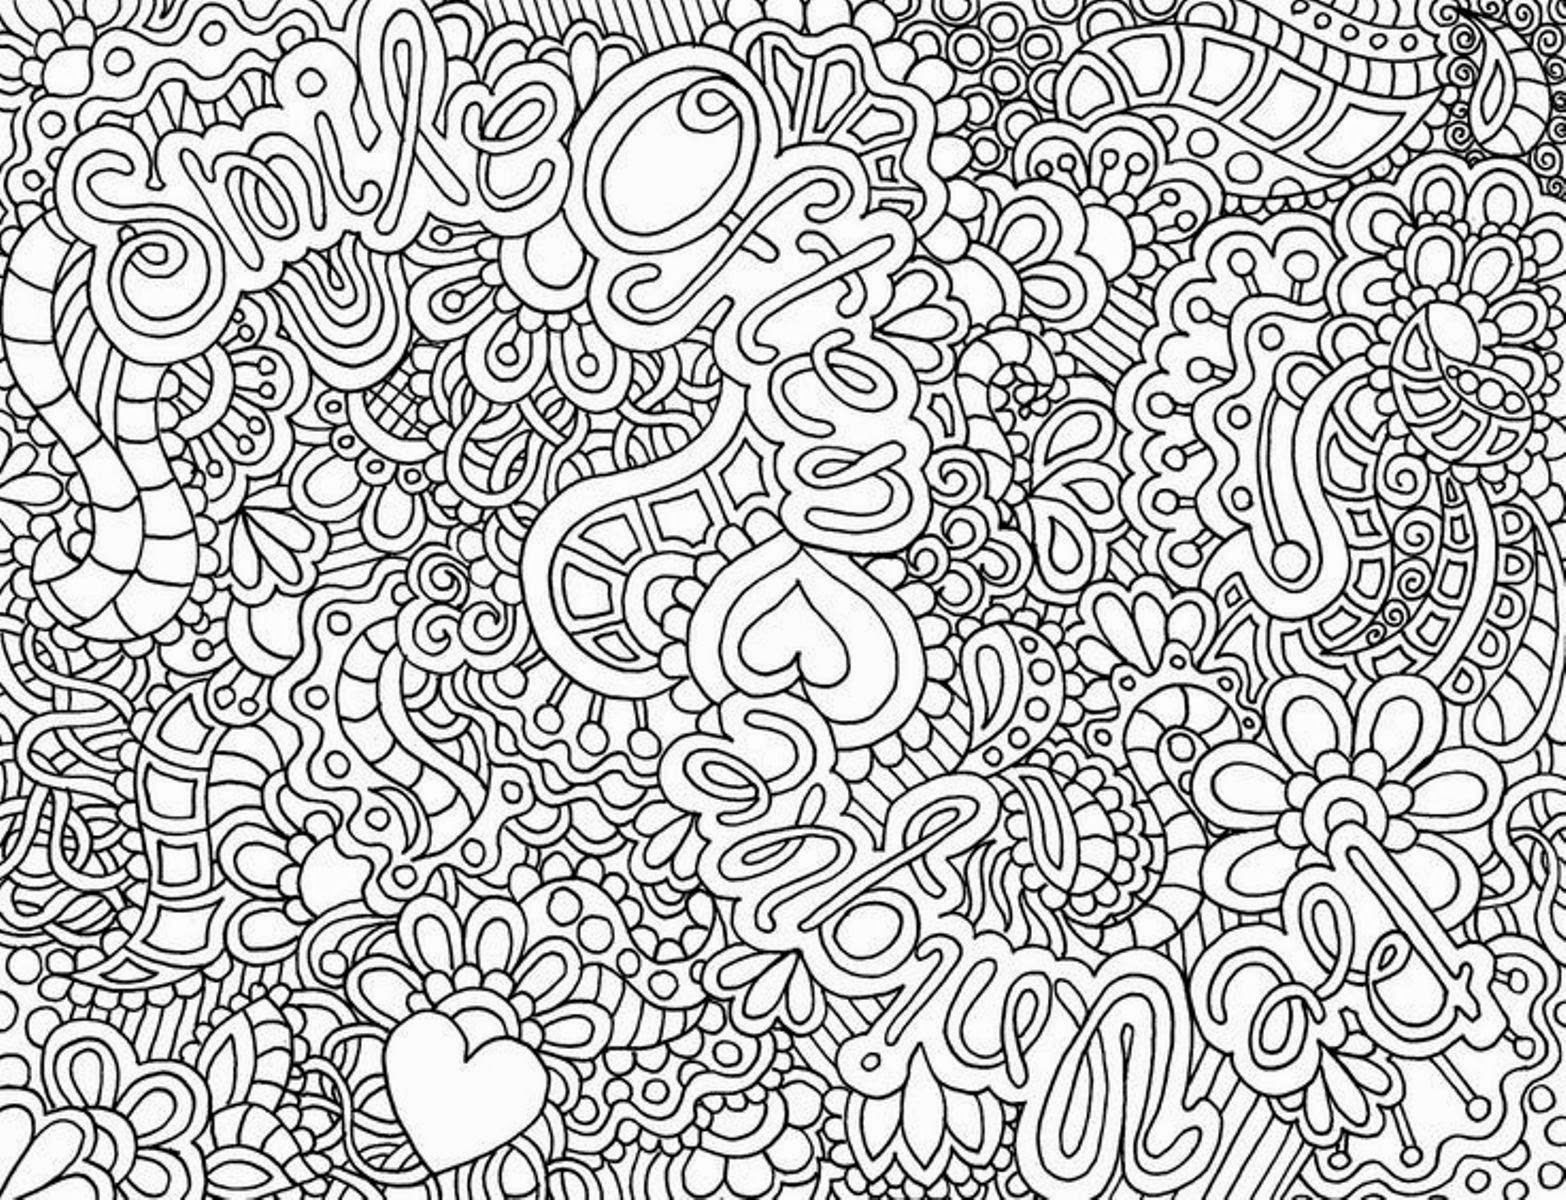 coloring pages difficult but fun coloring pages free and printable coloring sheets with fun coloring pages for older kids